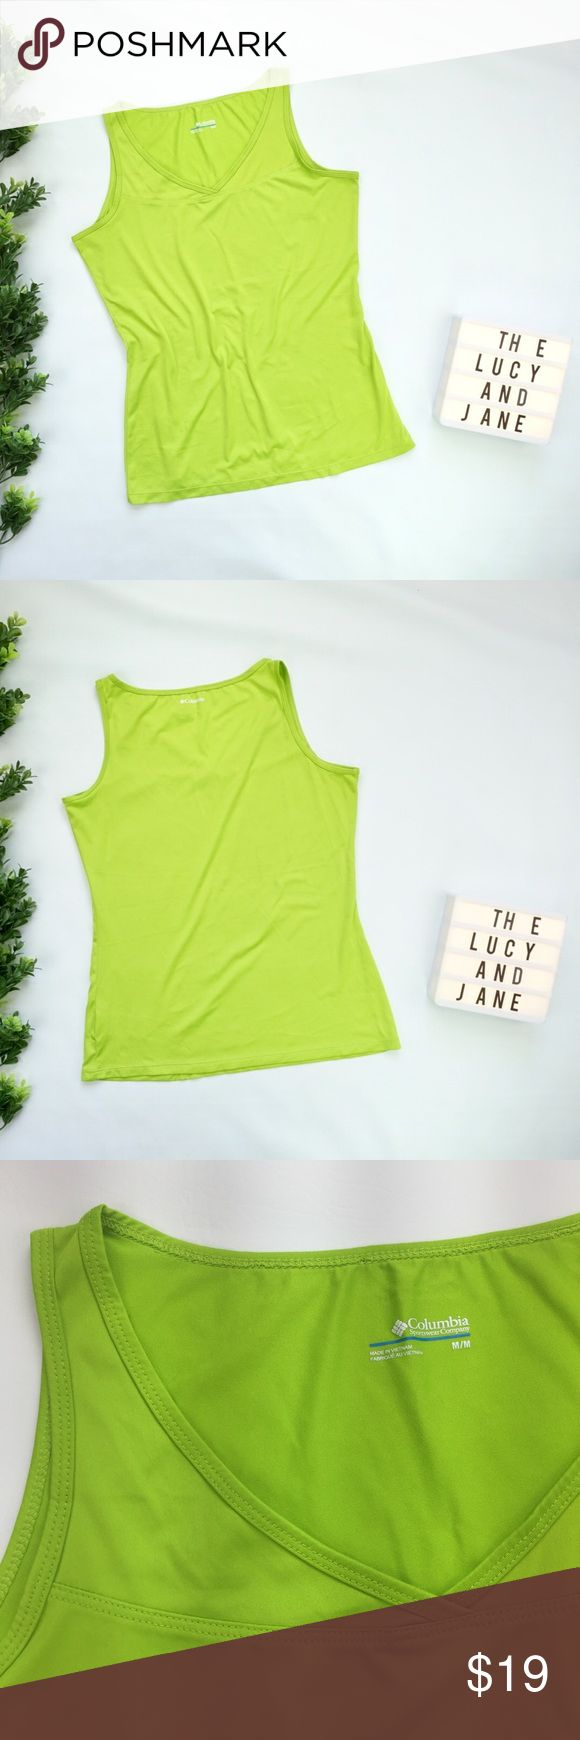 Columbia Sportswear Tank Pre-Loved Columbia Sportswear Company Tank Top in Bright Kelly Green.   * No Pulls * No Stains * Minimal Pilling * 100% Polyester   No Trades No Mercari No Off Posh Sales Crazy Low Offers Will Be Declined Columbia Tops Tank Tops